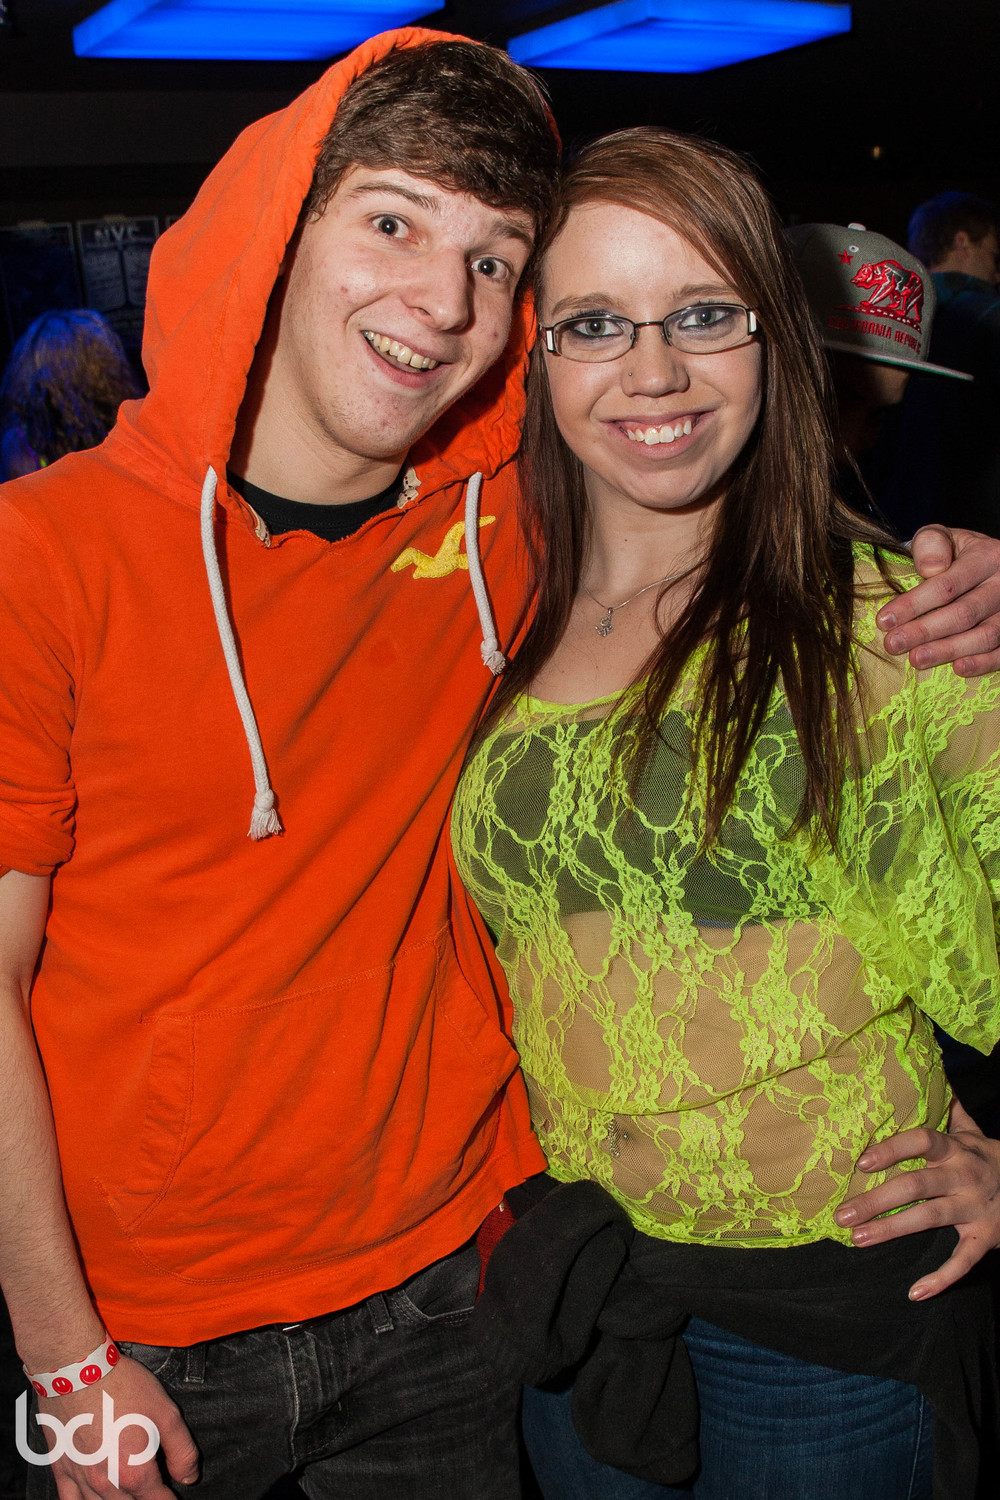 DallasK, DVBBS & Adventure Club at Skyway Theatre 121113 BDP-7.jpg